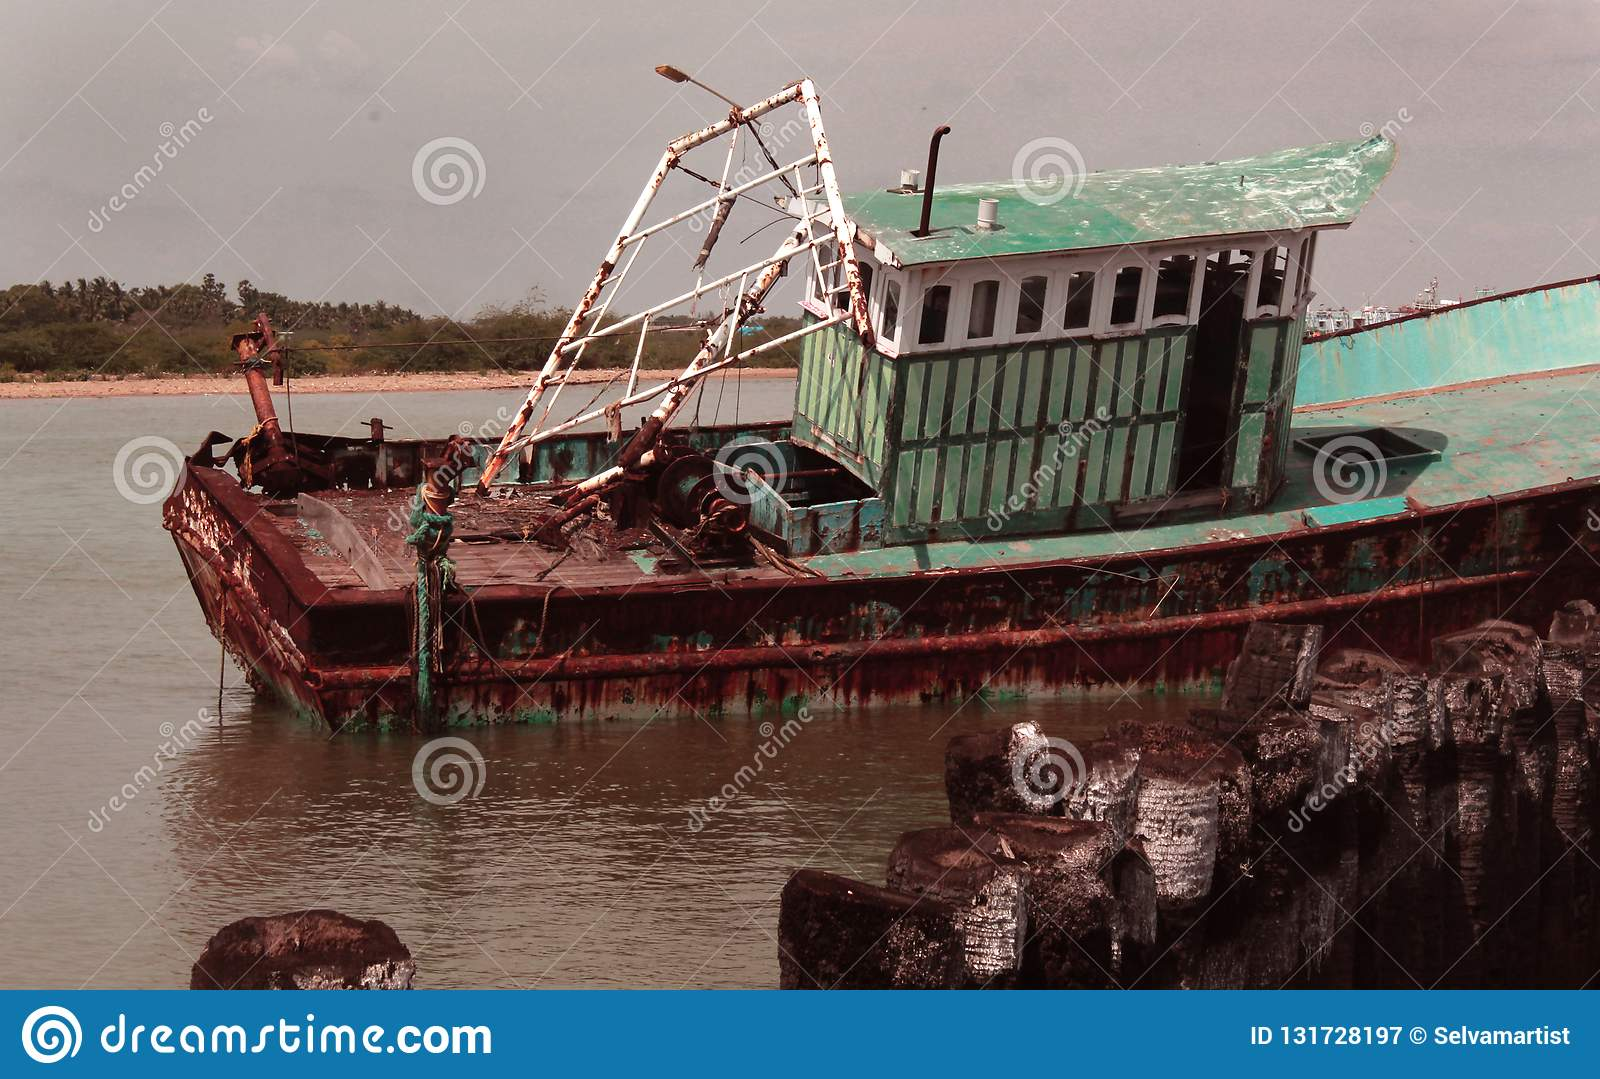 Abandoned Fisherman Boat On A Indian Small Harbor Stock Image Image Of Dilapidated Sailing 131728197